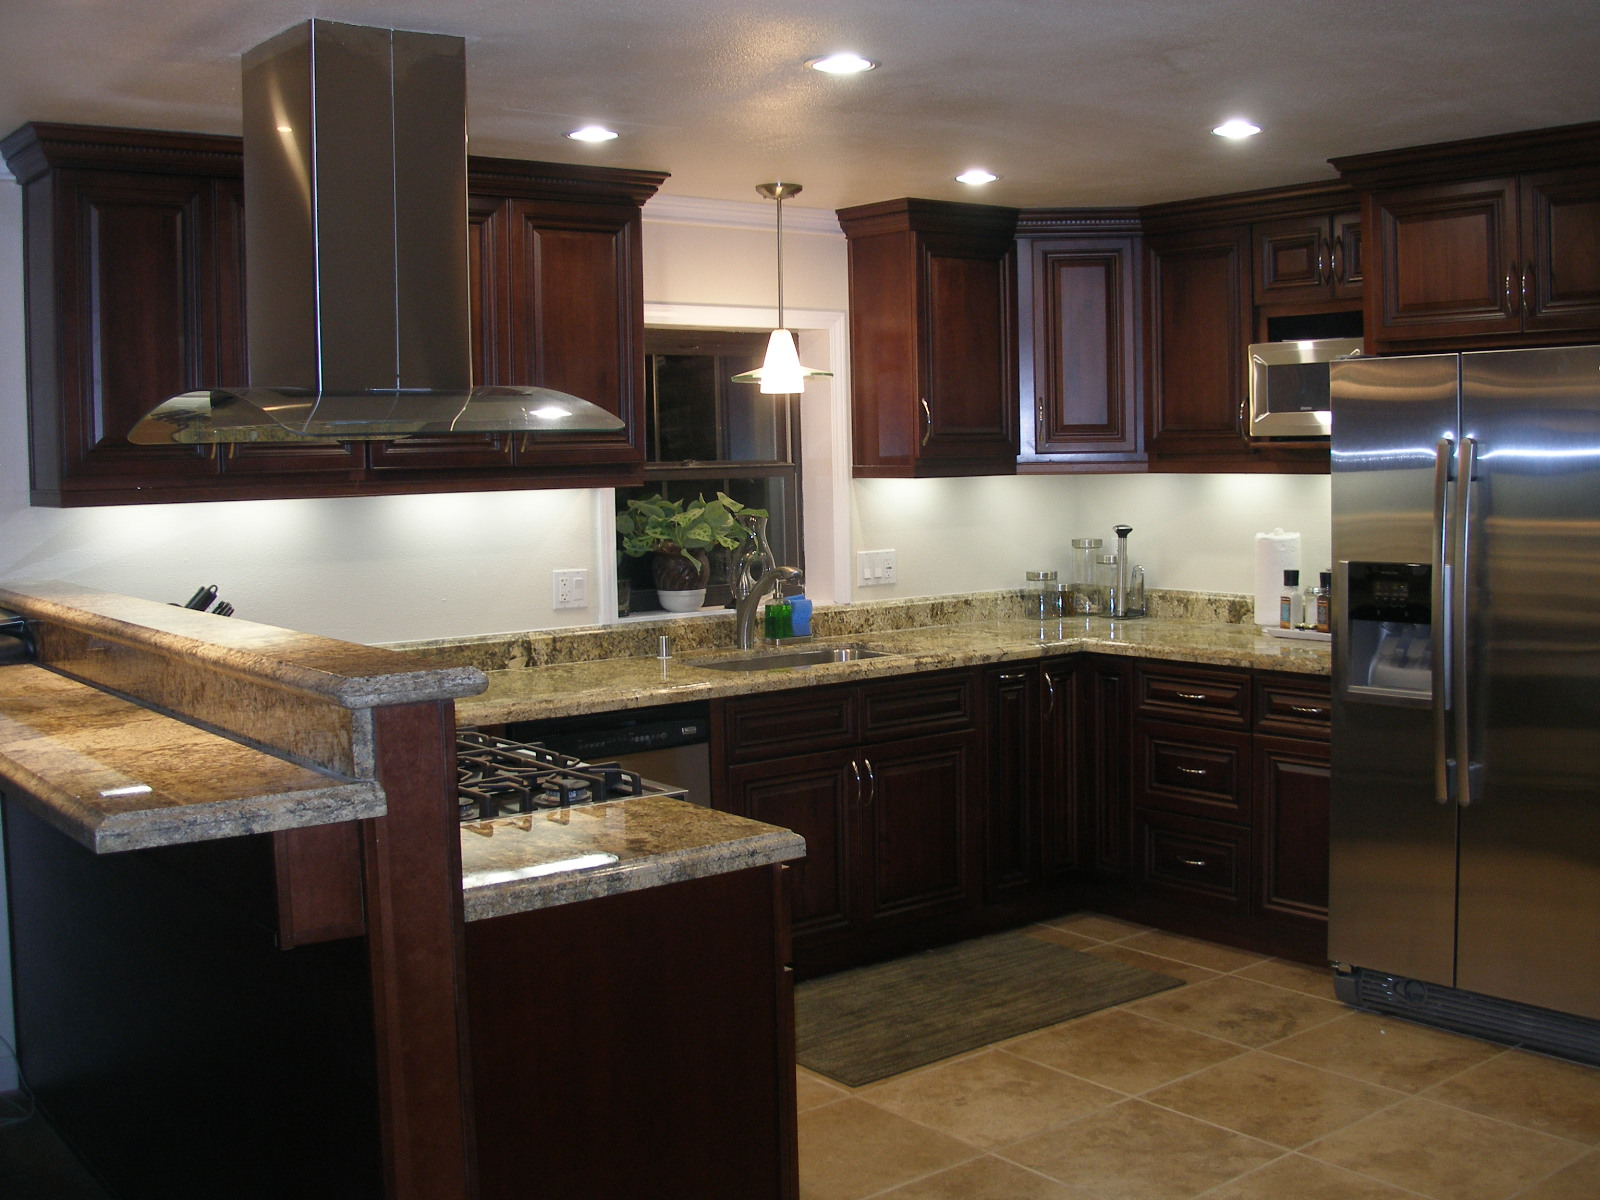 Kitchen remodeling brad t jones construction for Kitchen remodel styles